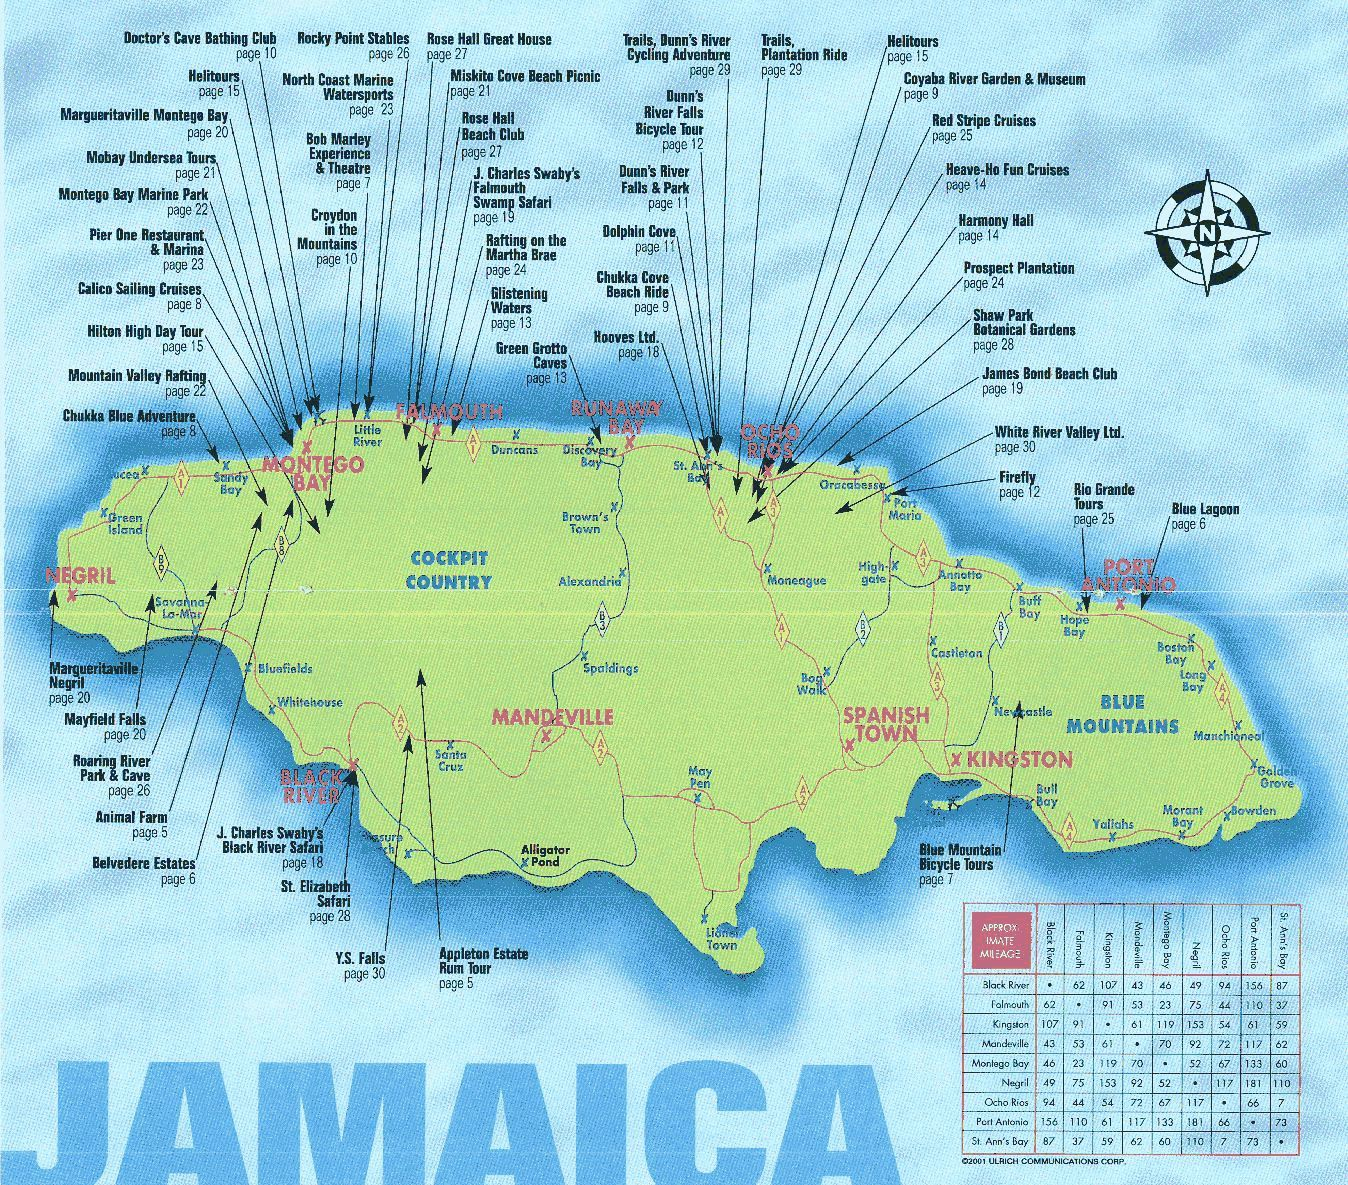 jamaican sights  Westend Negrils Jamaica Attraction Map